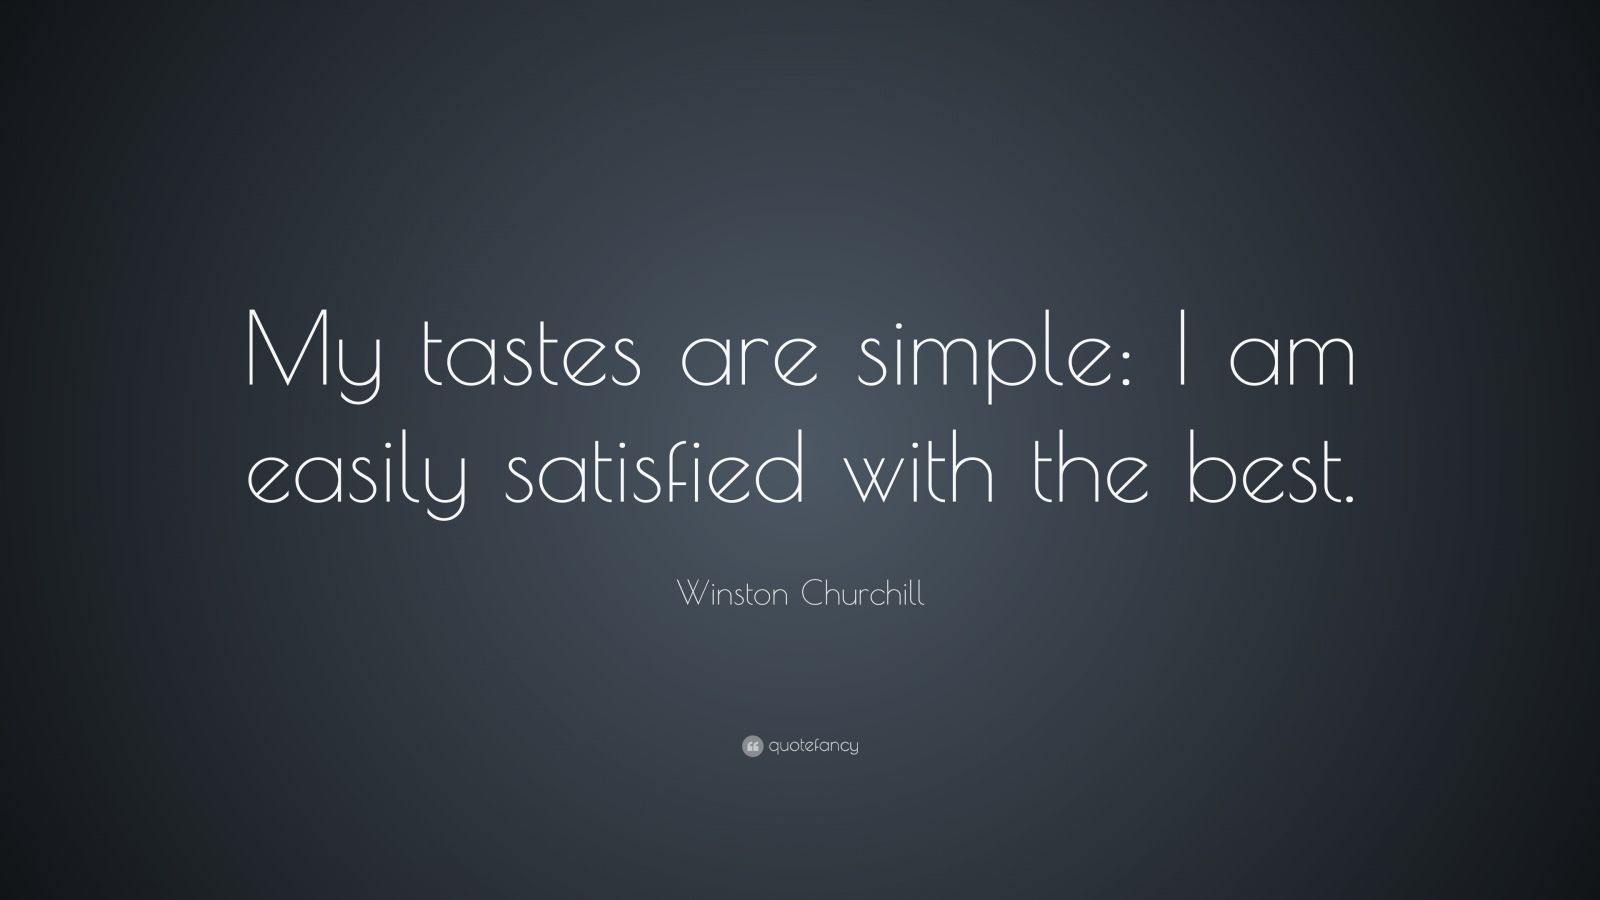 winston churchill quotes  100 wallpapers